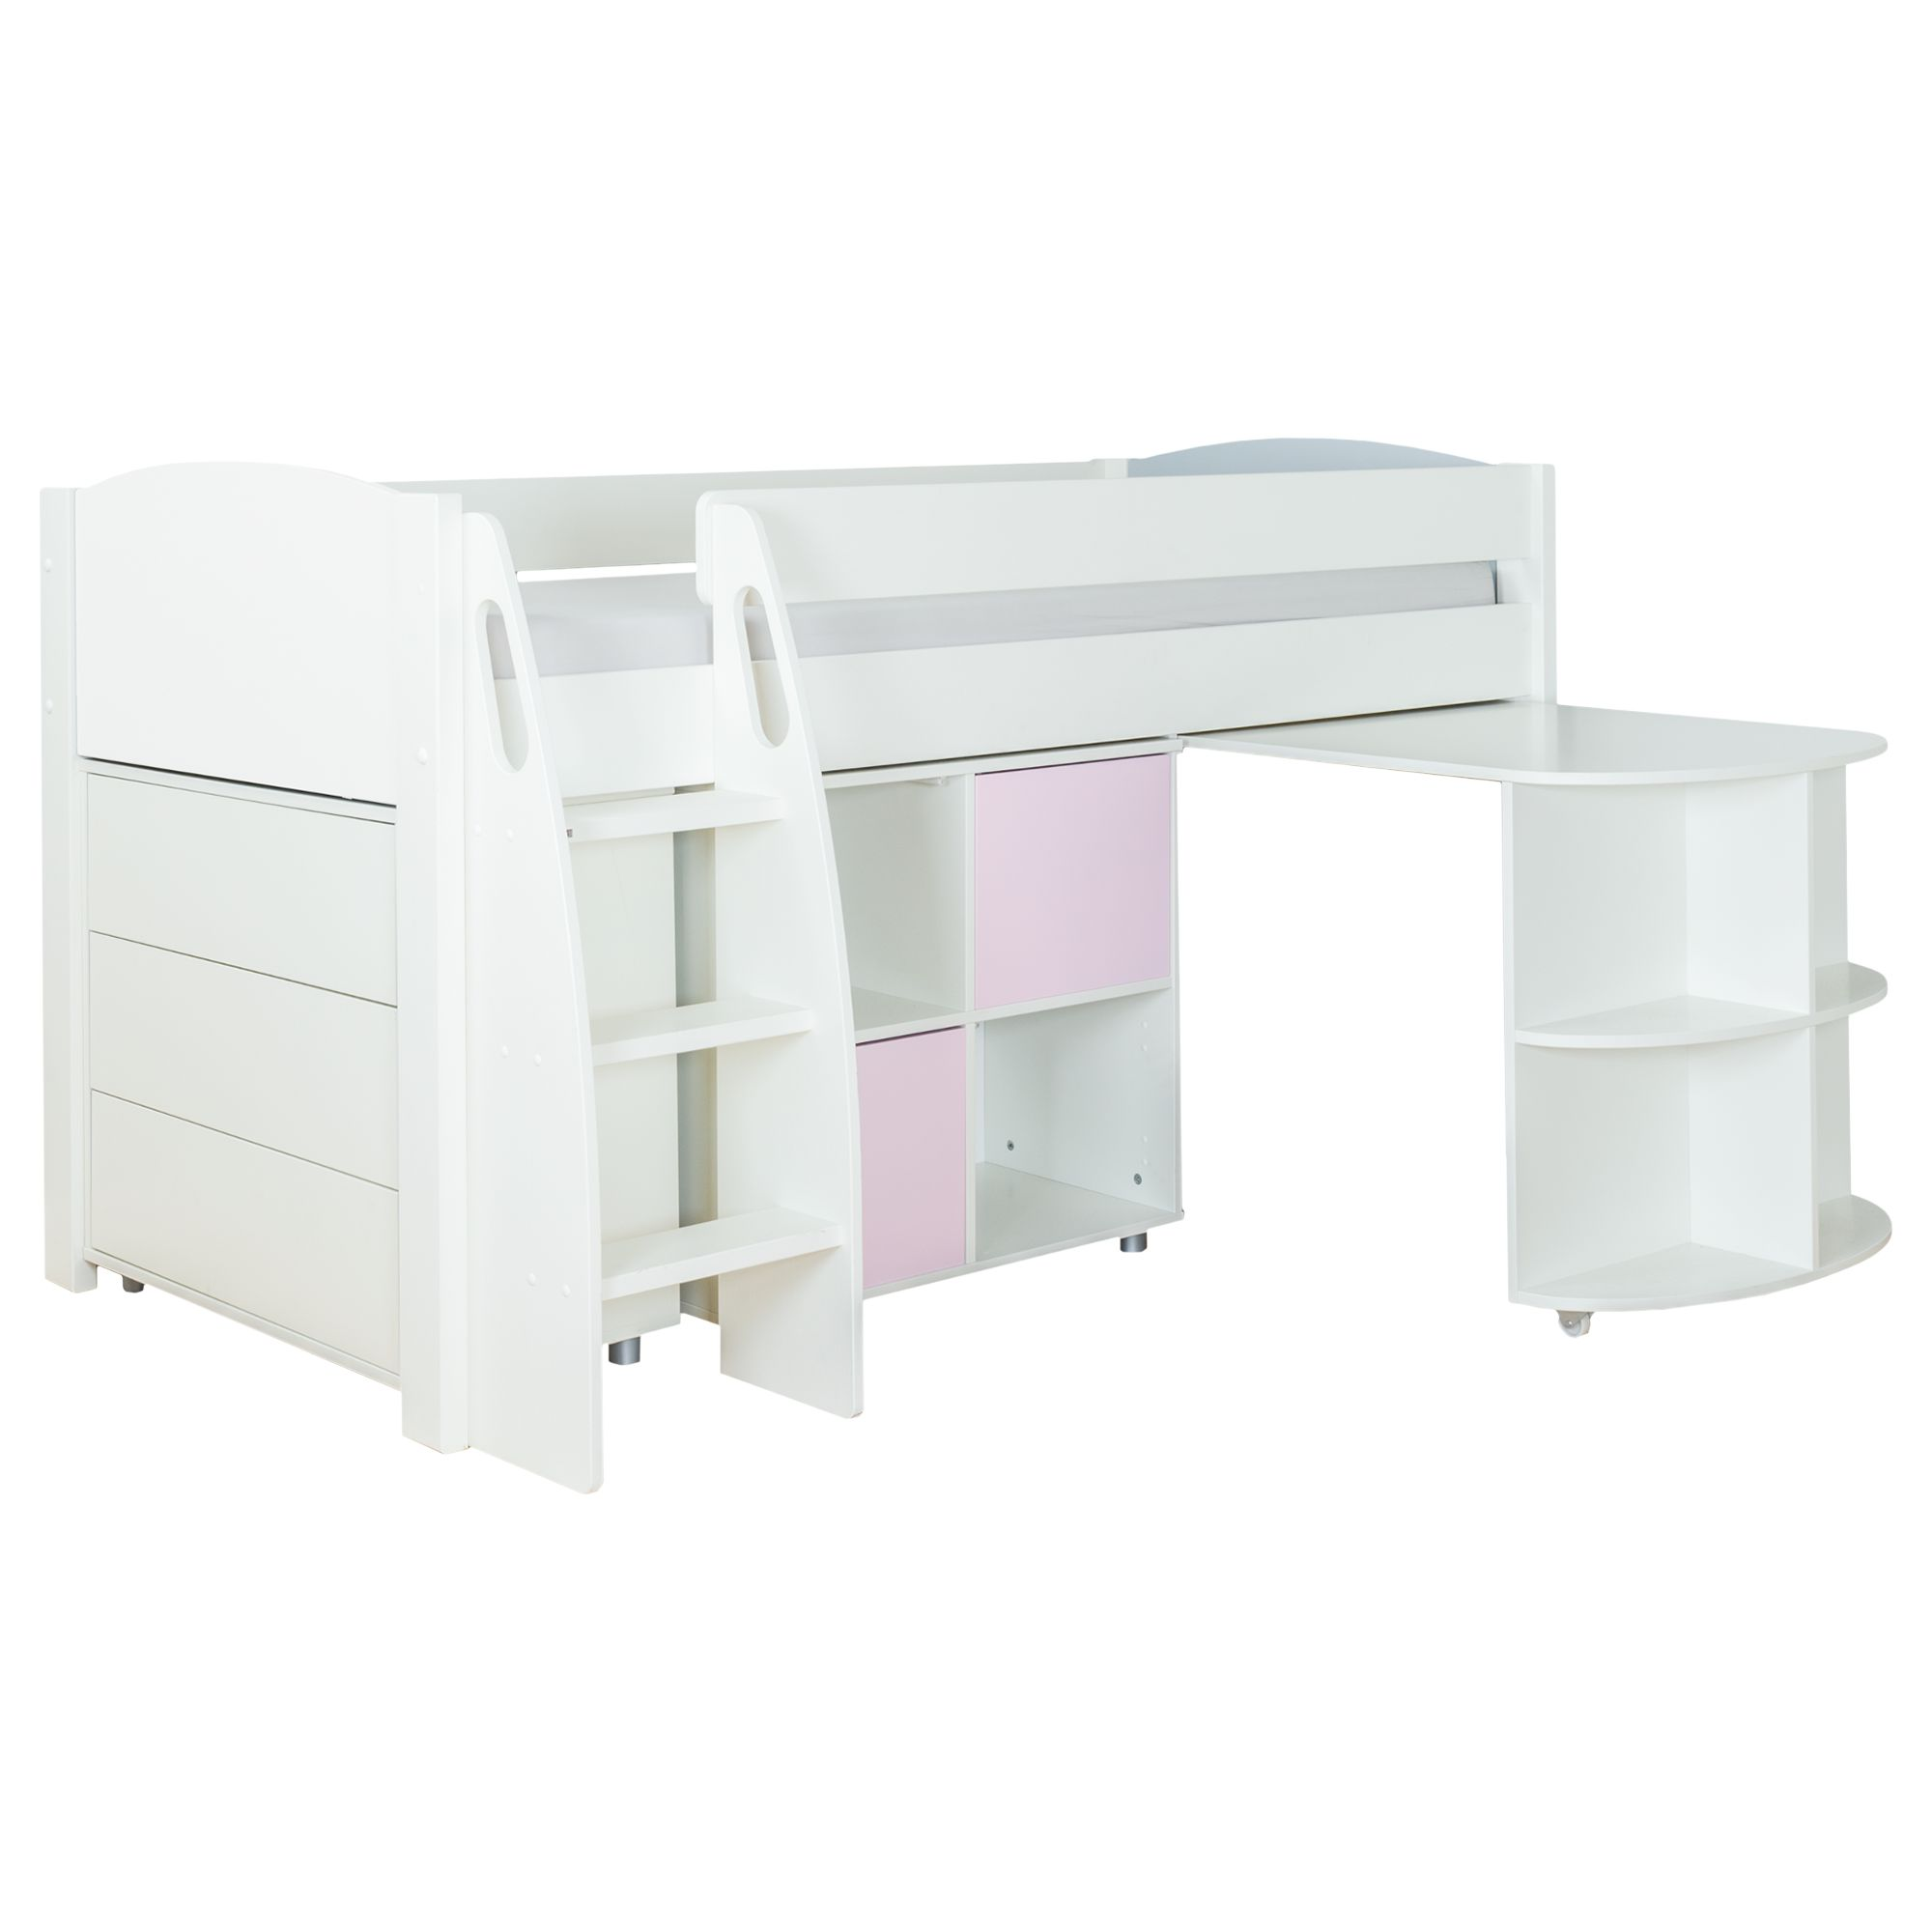 Stompa Stompa Uno S Plus Mid-Sleeper with Pull-Out Desk, 3 Drawer Chest and 2 Door Cube Unit